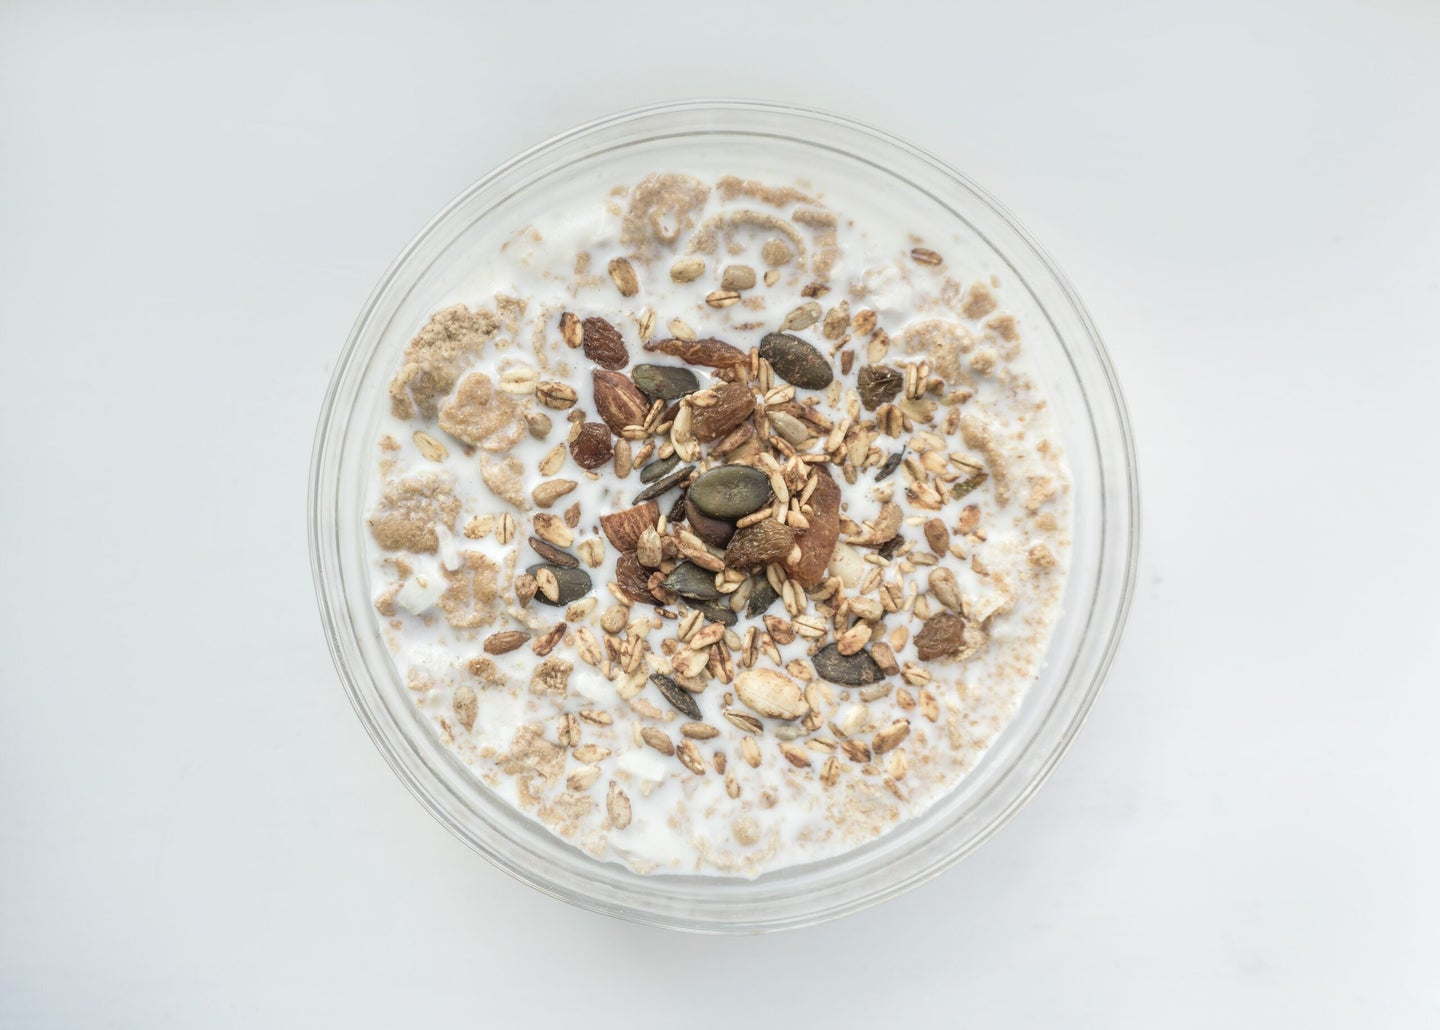 bowl of oatmeal with milk on a white background